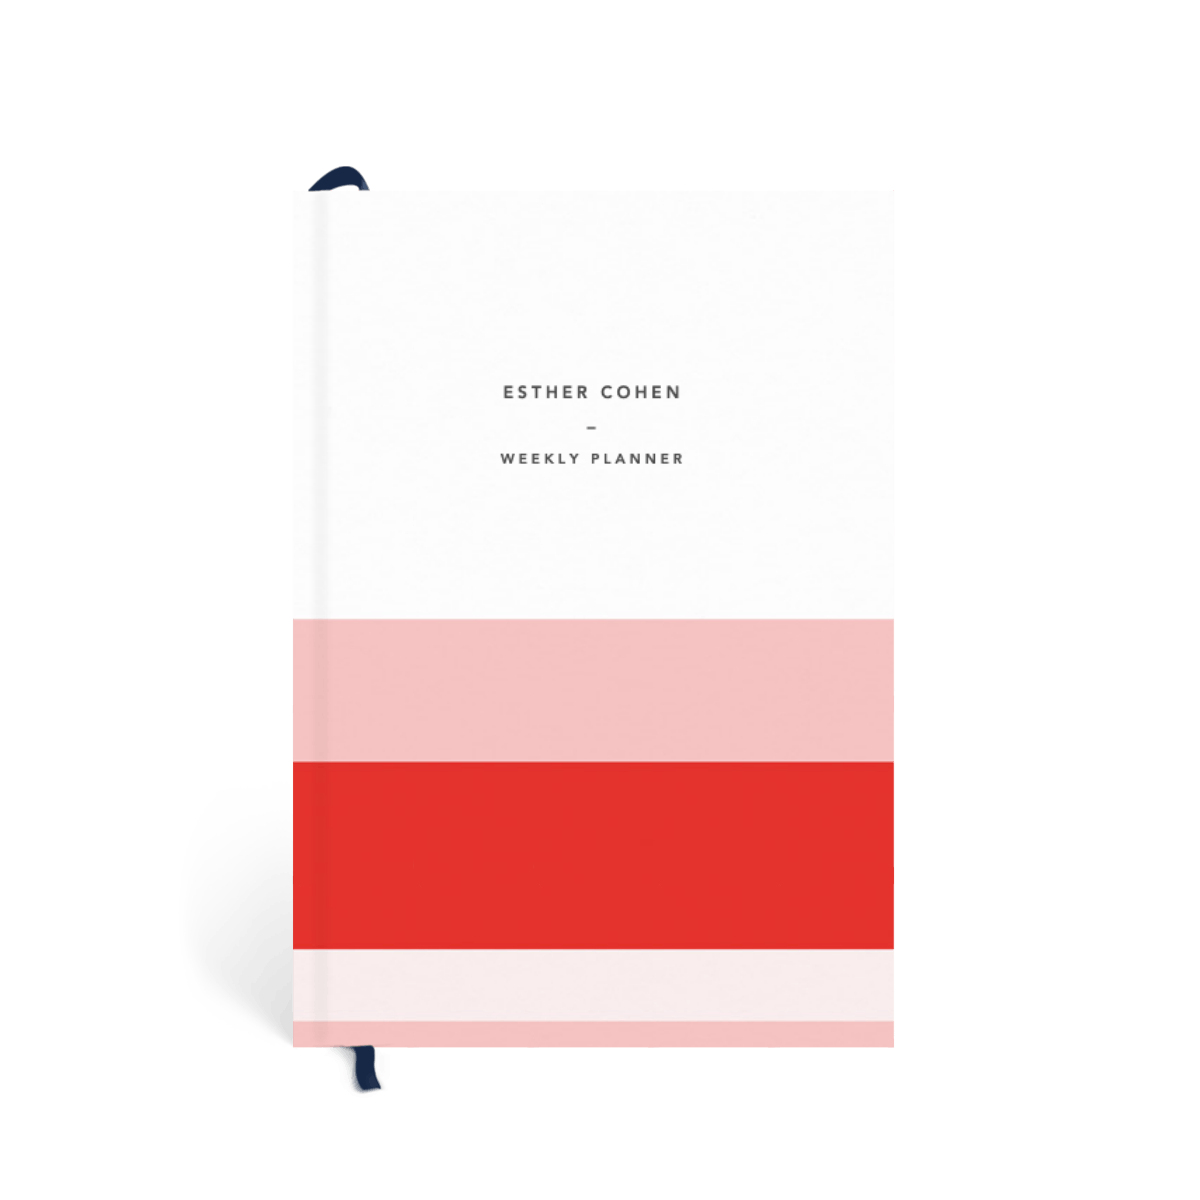 Https%3a%2f%2fwww.papier.com%2fproduct image%2f67263%2f36%2fstriped colourblock pink red 15947 front 1578667569.png?ixlib=rb 1.1